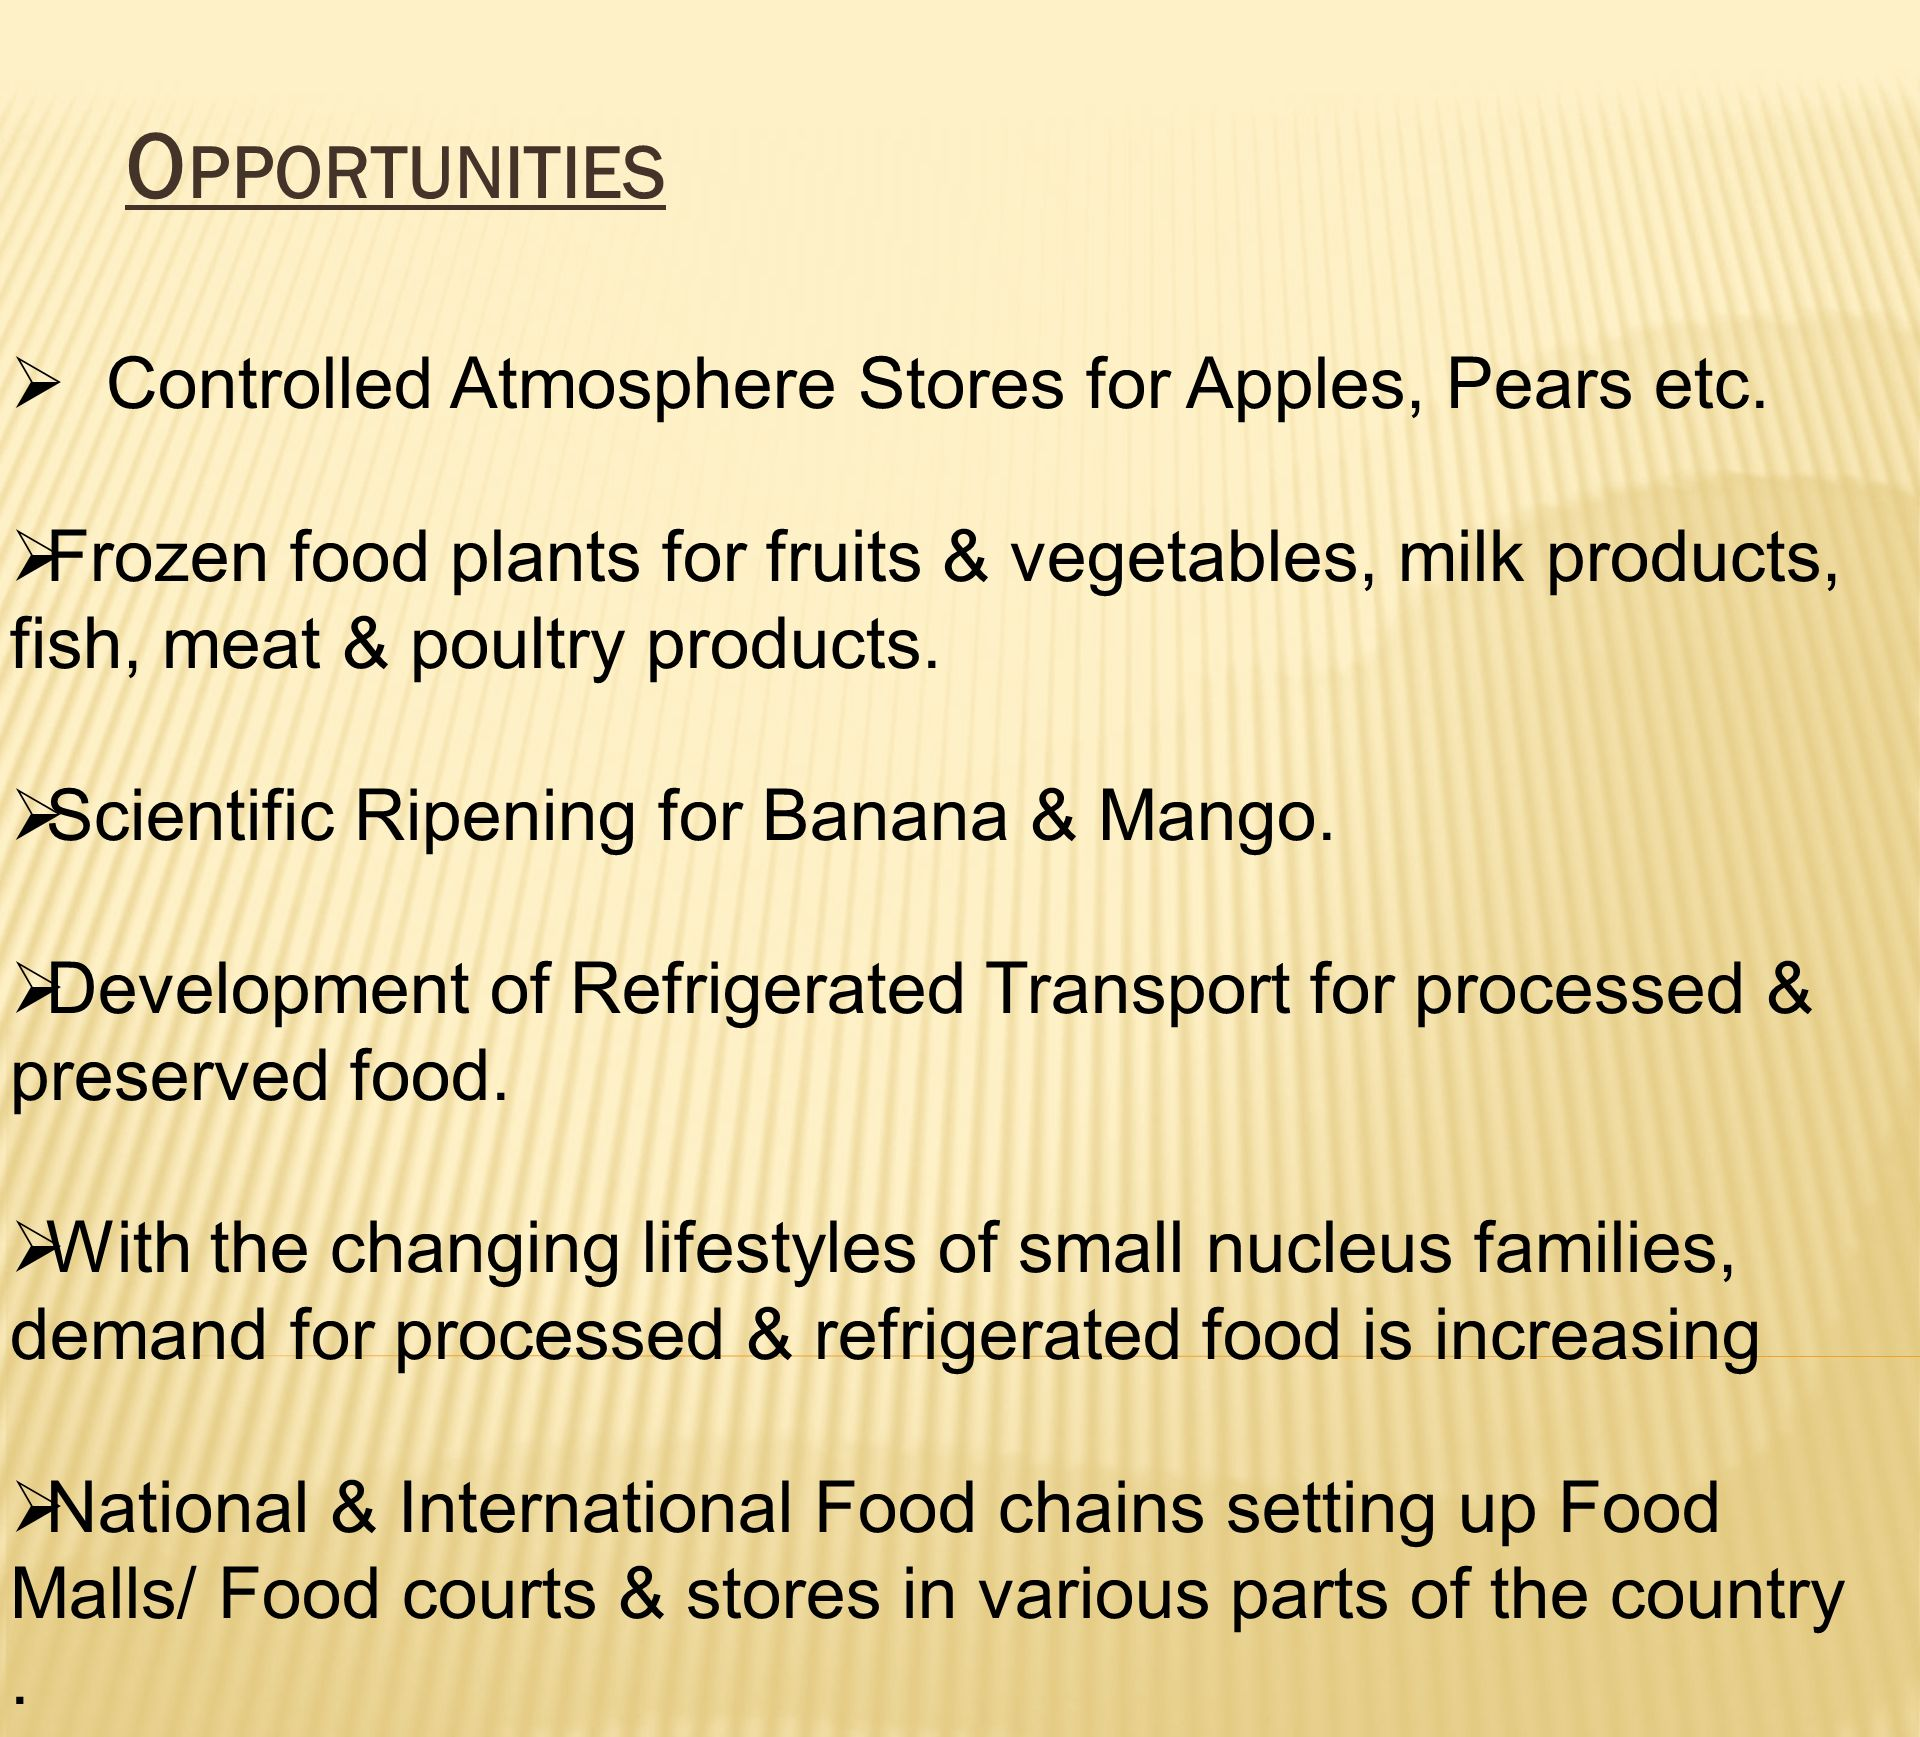 Opportunities Controlled Atmosphere Stores for Apples, Pears etc.